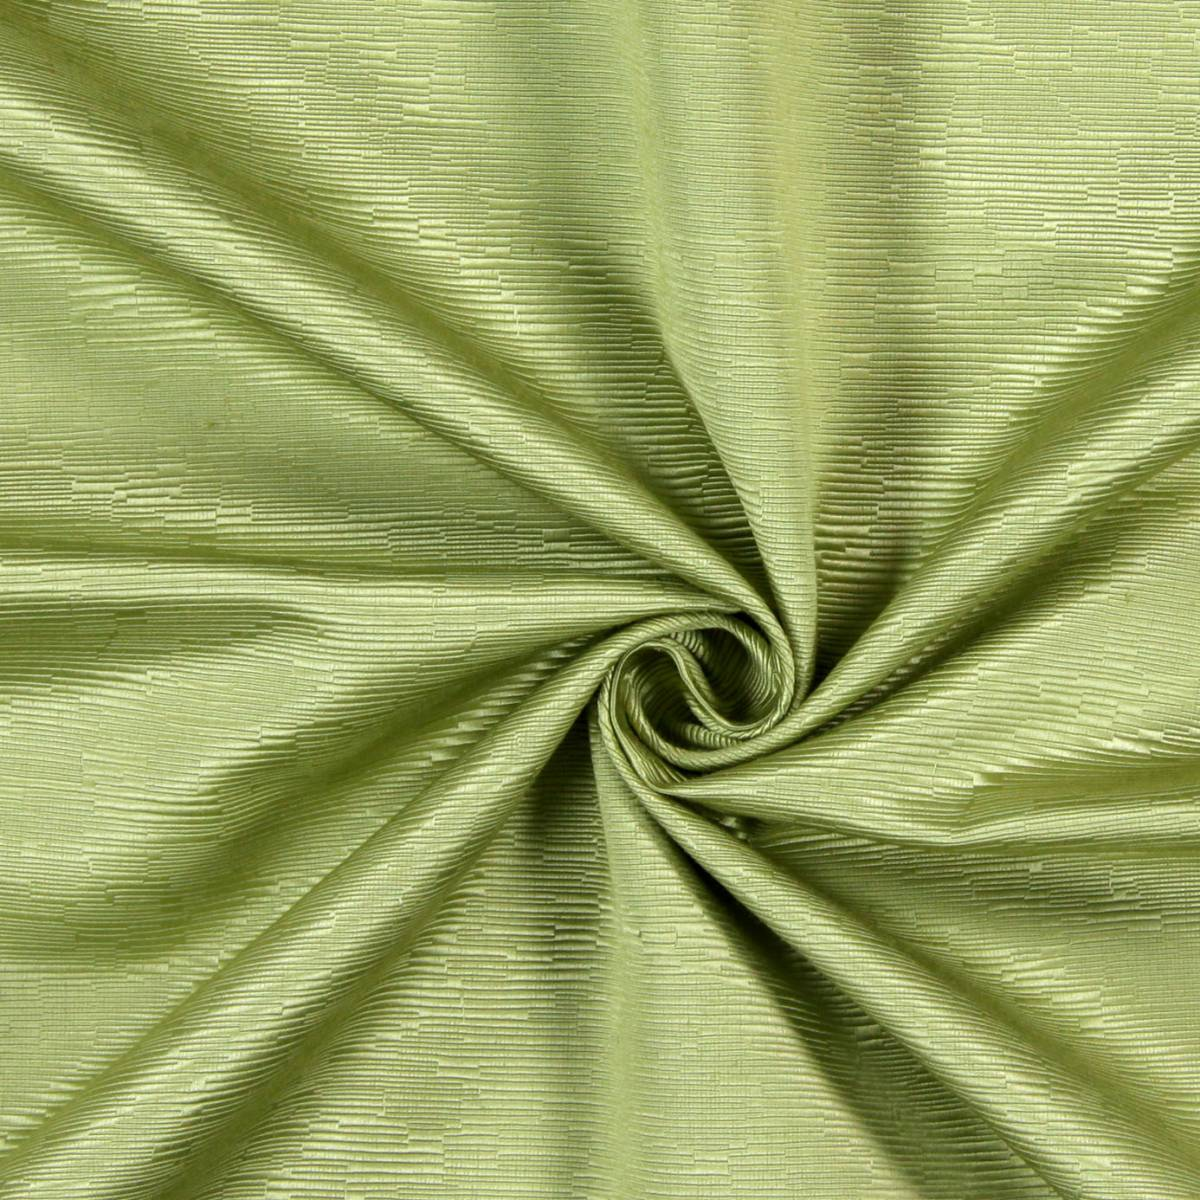 Curtains in bamboo fabric sage 7143 638 prestigious textiles